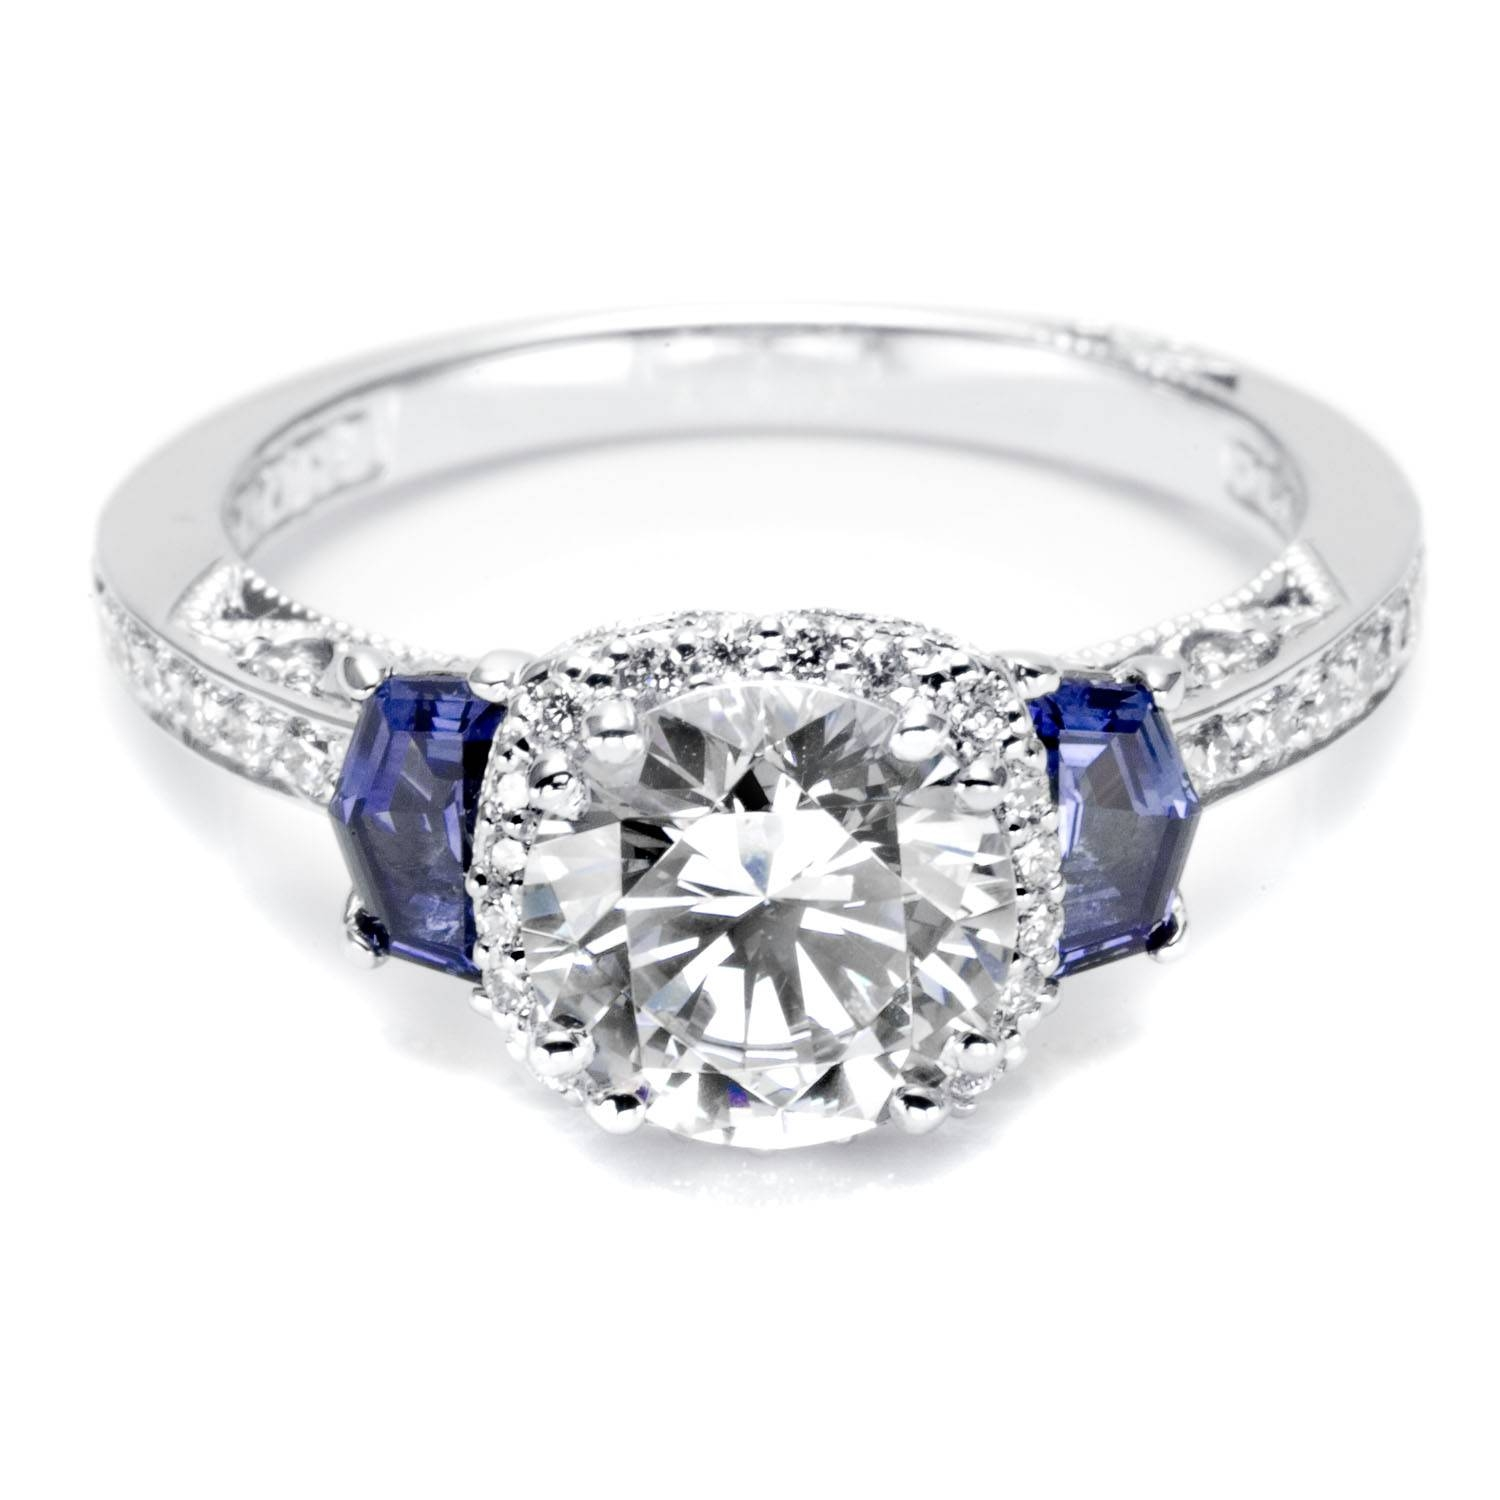 Engagement Rings : Awesome Diamond Engagement Rings With Sapphires With Regard To Wedding Rings With Diamonds And Sapphires (View 4 of 15)